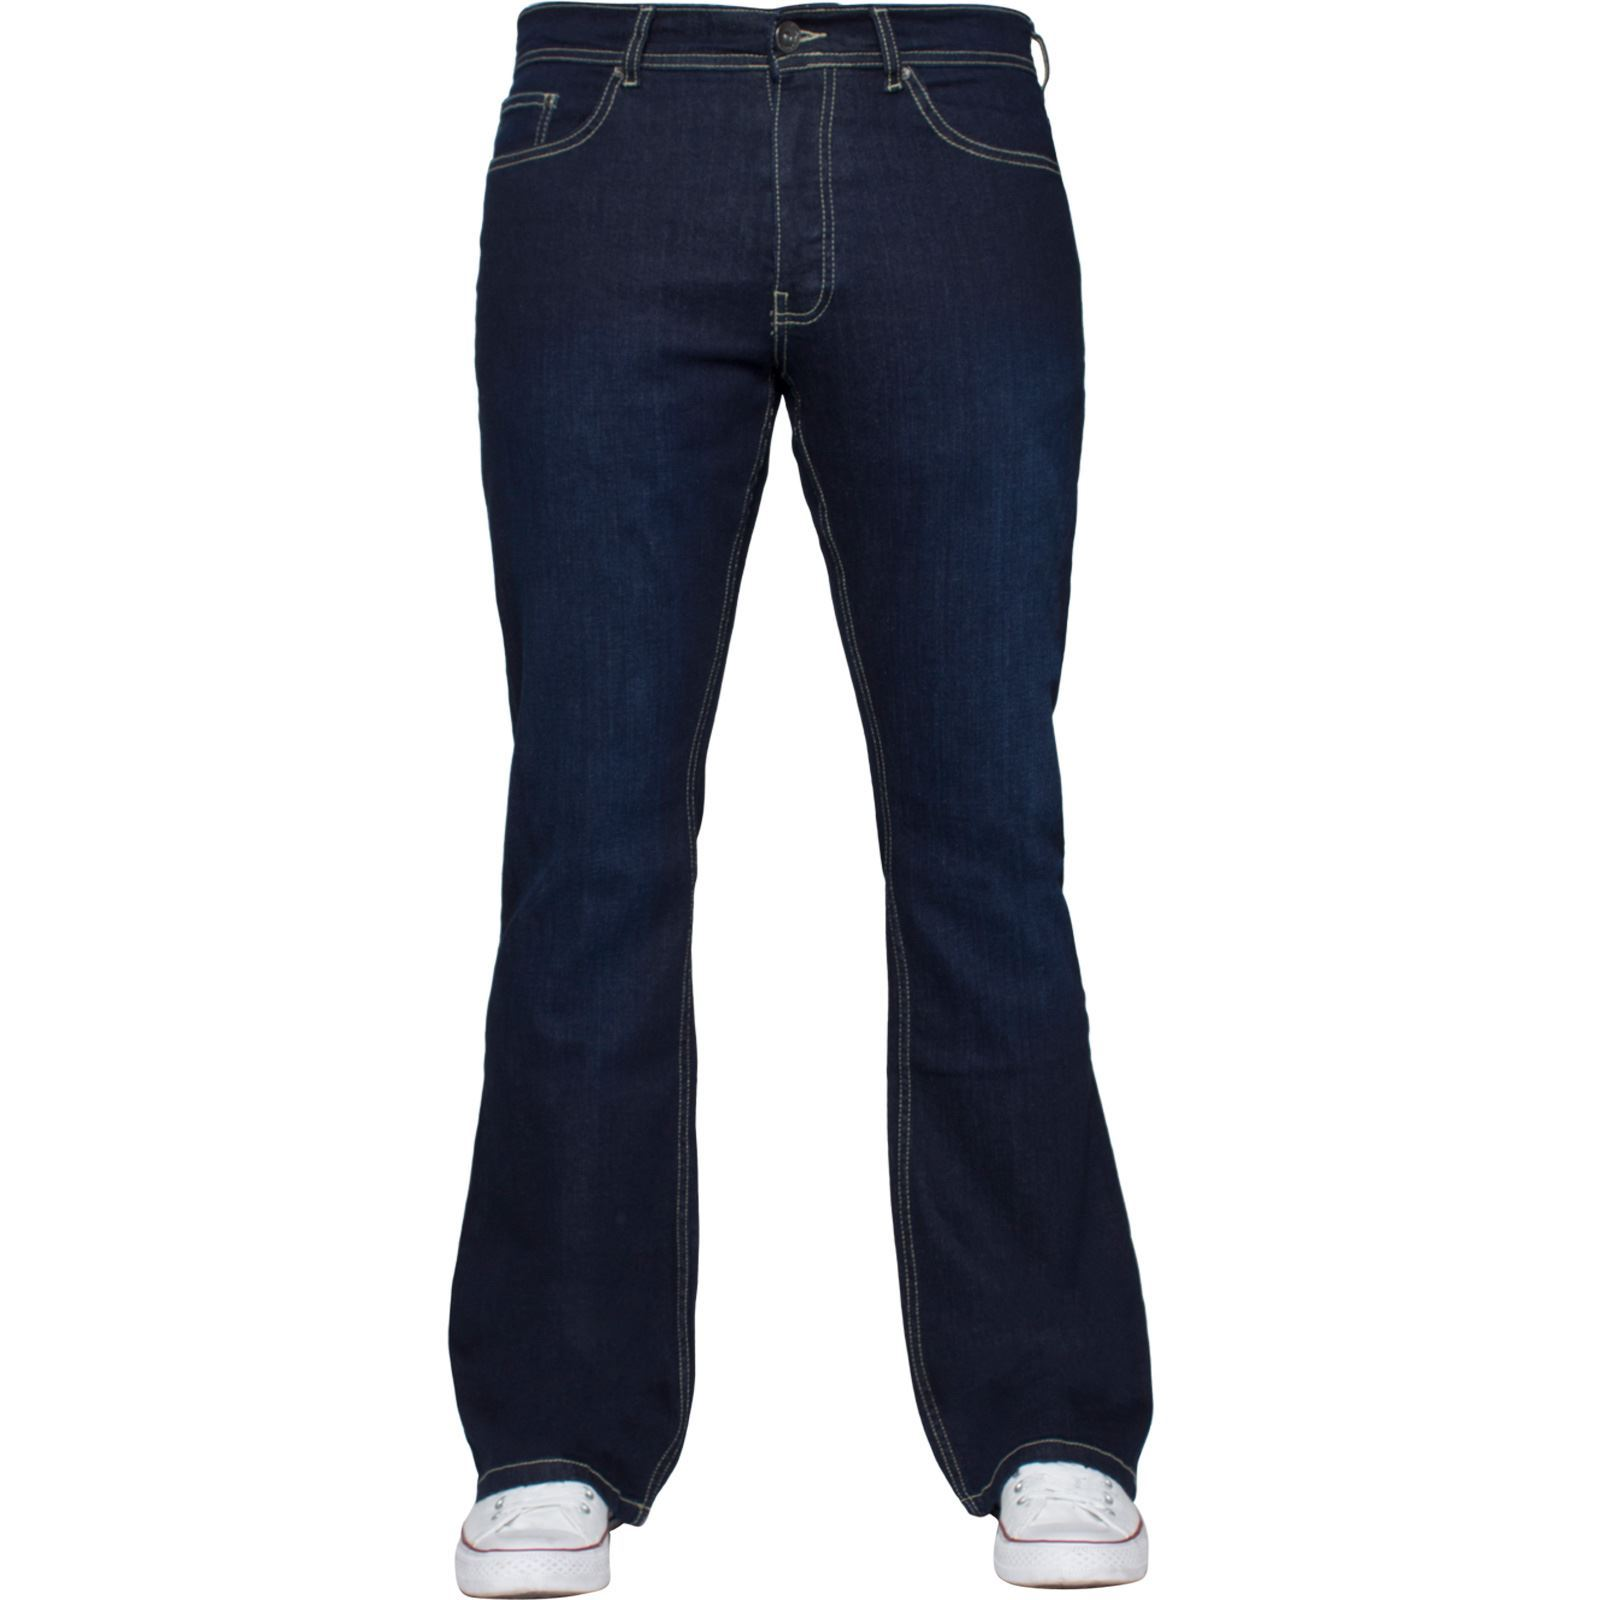 Kruze-Mens-Basic-Straight-Leg-Bootcut-Stretch-Jeans-Denim-Regular-Big-Tall-Waist thumbnail 58